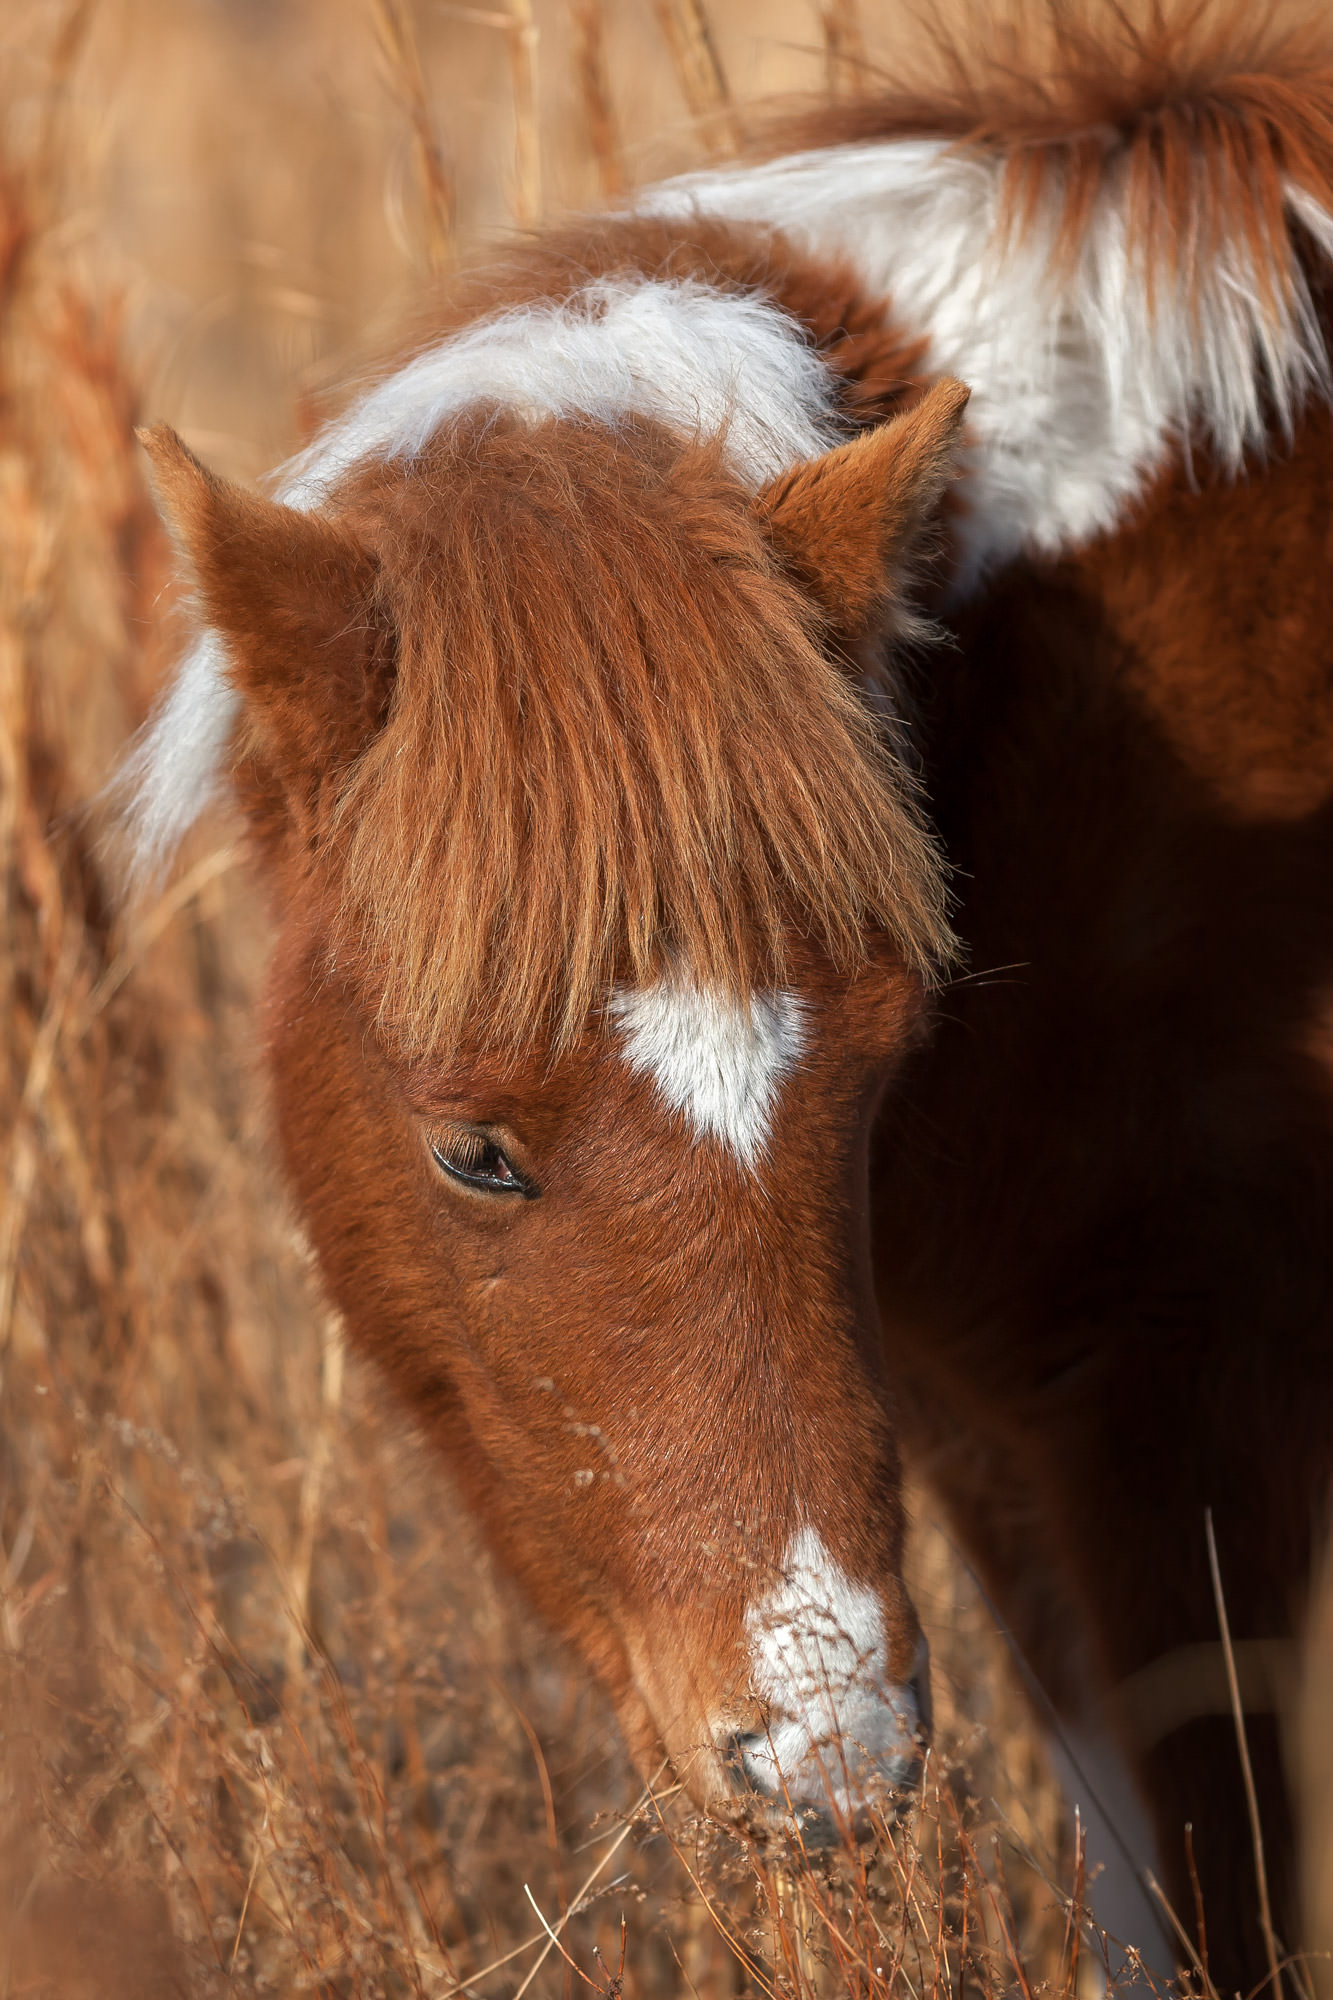 Wild Horse Fine Art Photography A Limited Edition photograph of the face of a Wild Horse pony at Chincoteague NWR in Virginia...